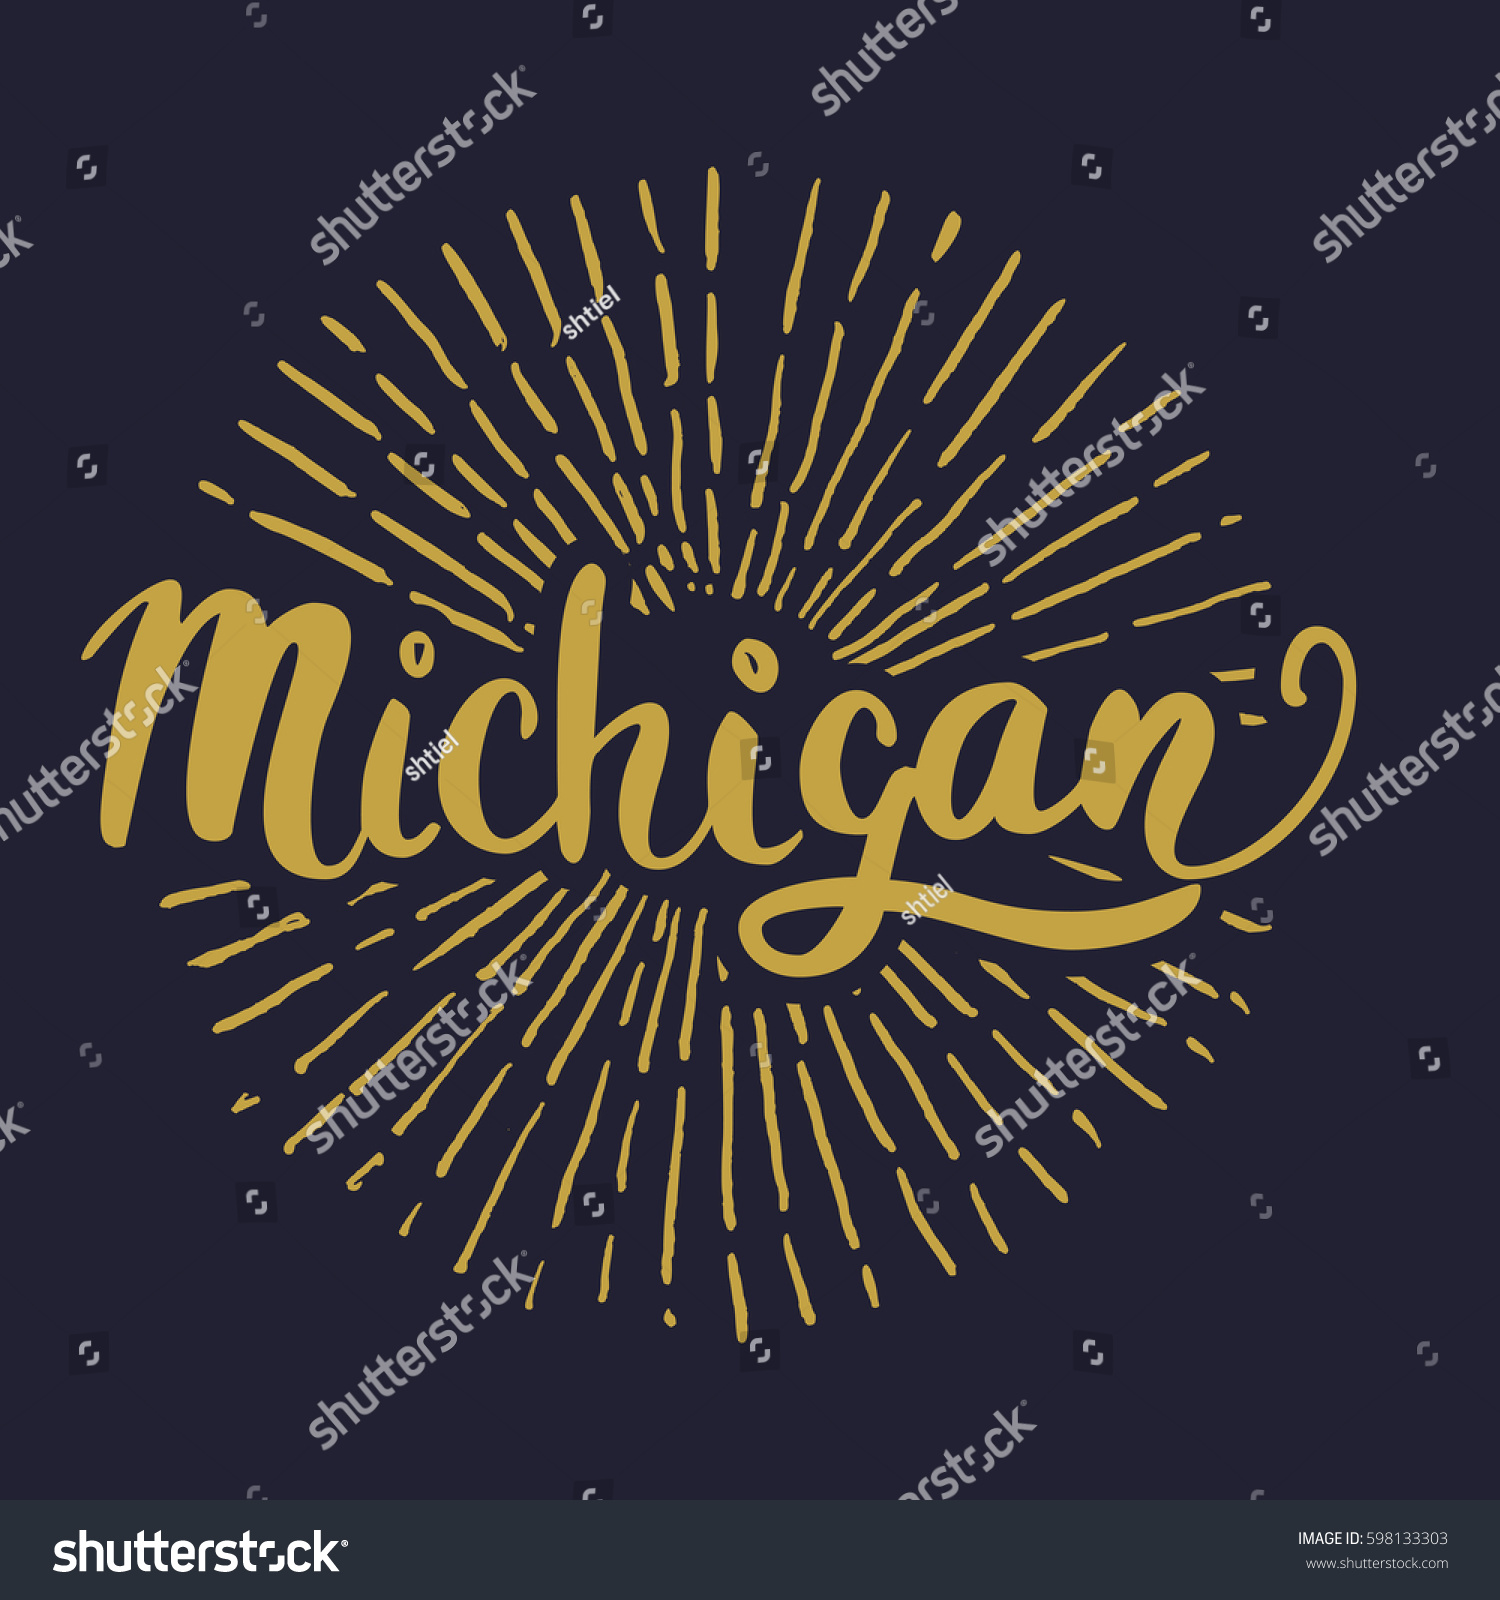 Custom hand lettering creative typography hand stock vector 2018 the custom hand lettering creative typography hand drawn greeting card with text michigan m4hsunfo